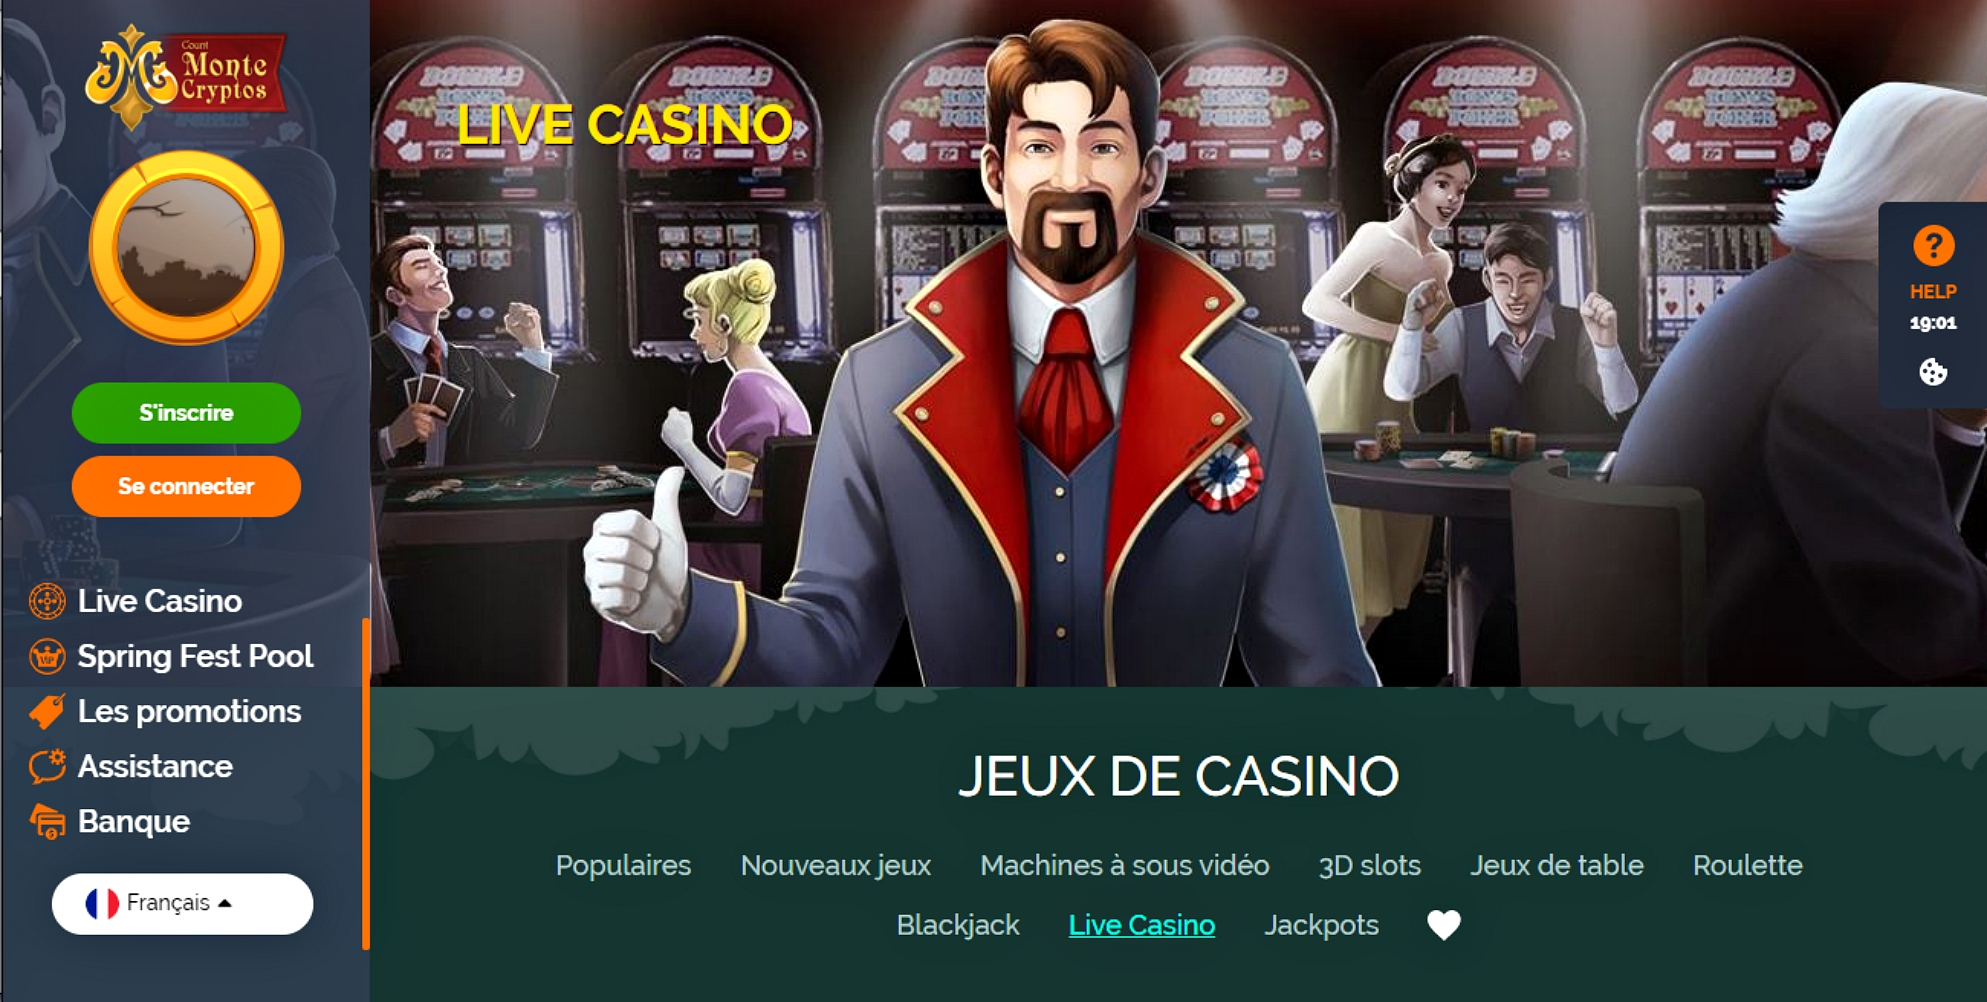 bonus montecryptos casino